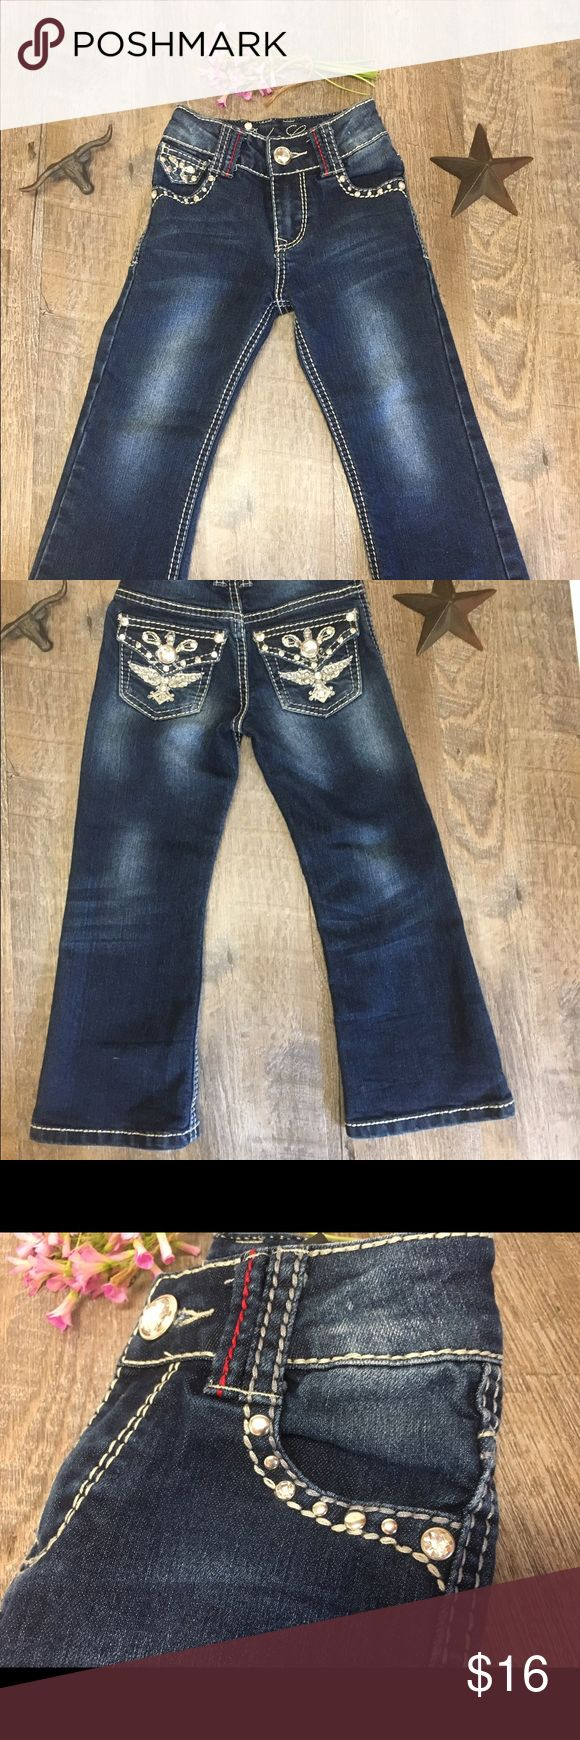 Girls western wear Rodeo girl blingy jeans Flawless condition size 4 adjustable waist all rhinestones in place. White stitching large stone bottom #823 rodeo girl Bottoms Jeans